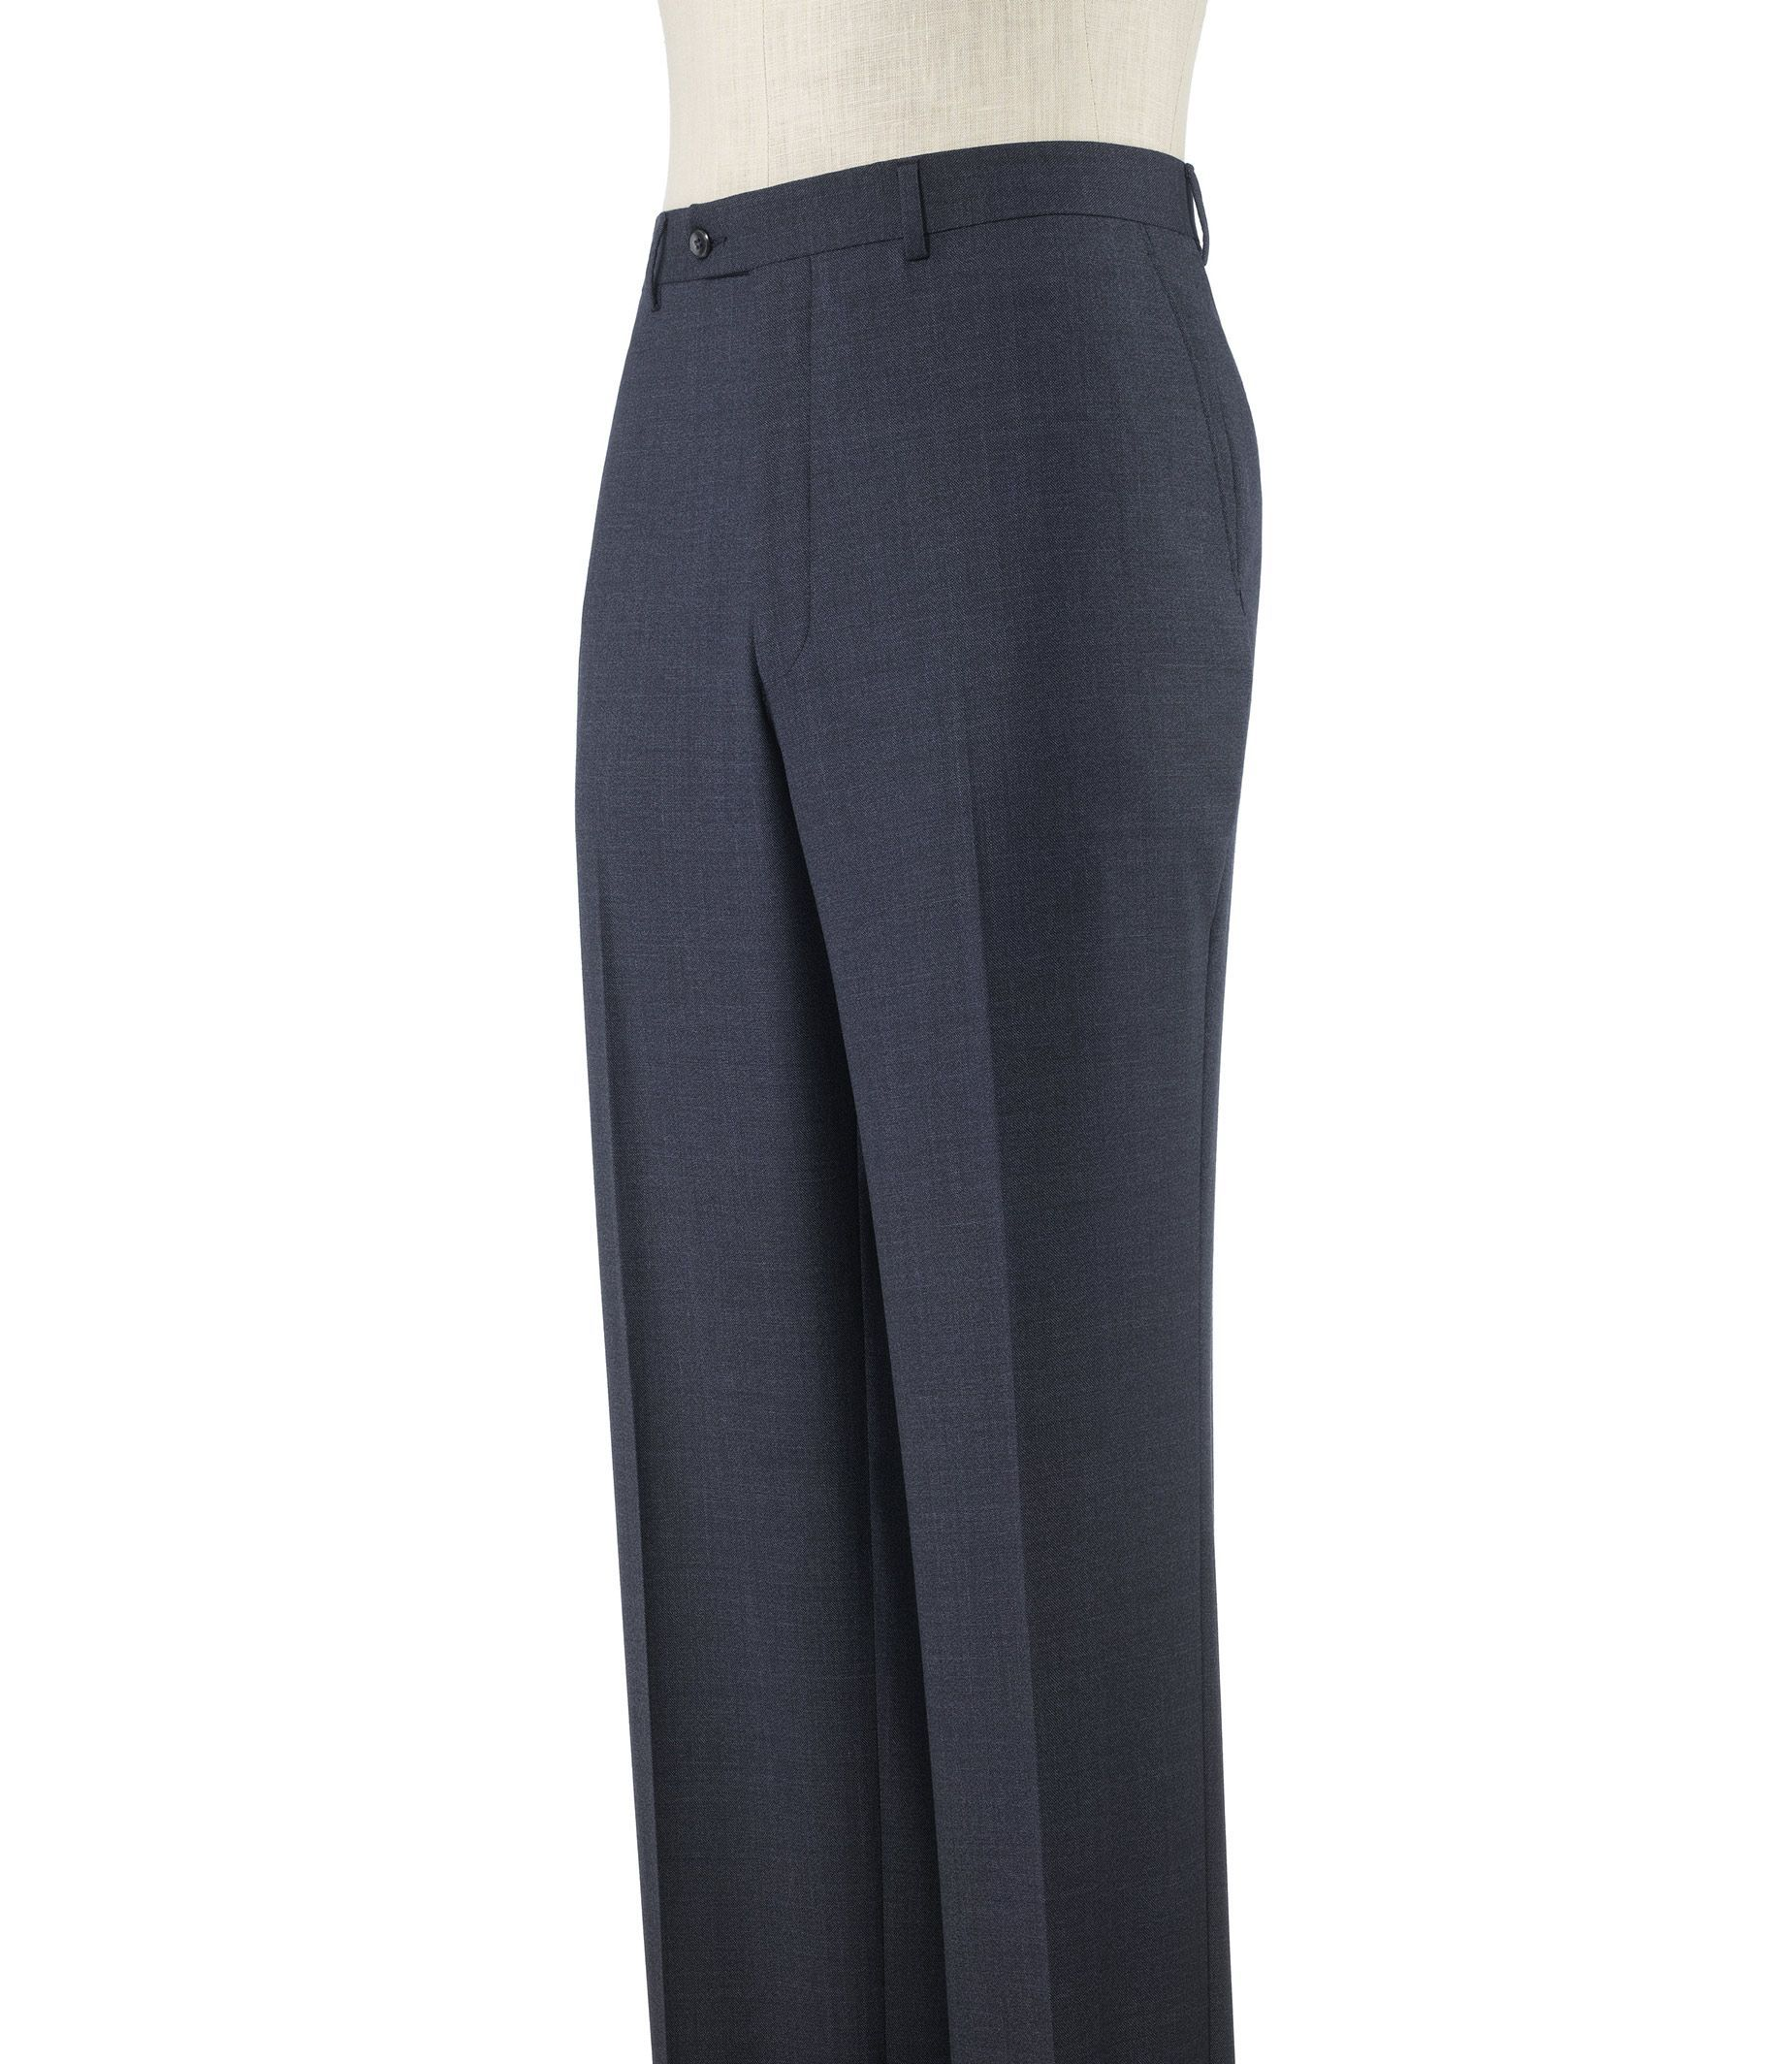 Executive Tailored Fit Plain Front Sharkskin Trousers